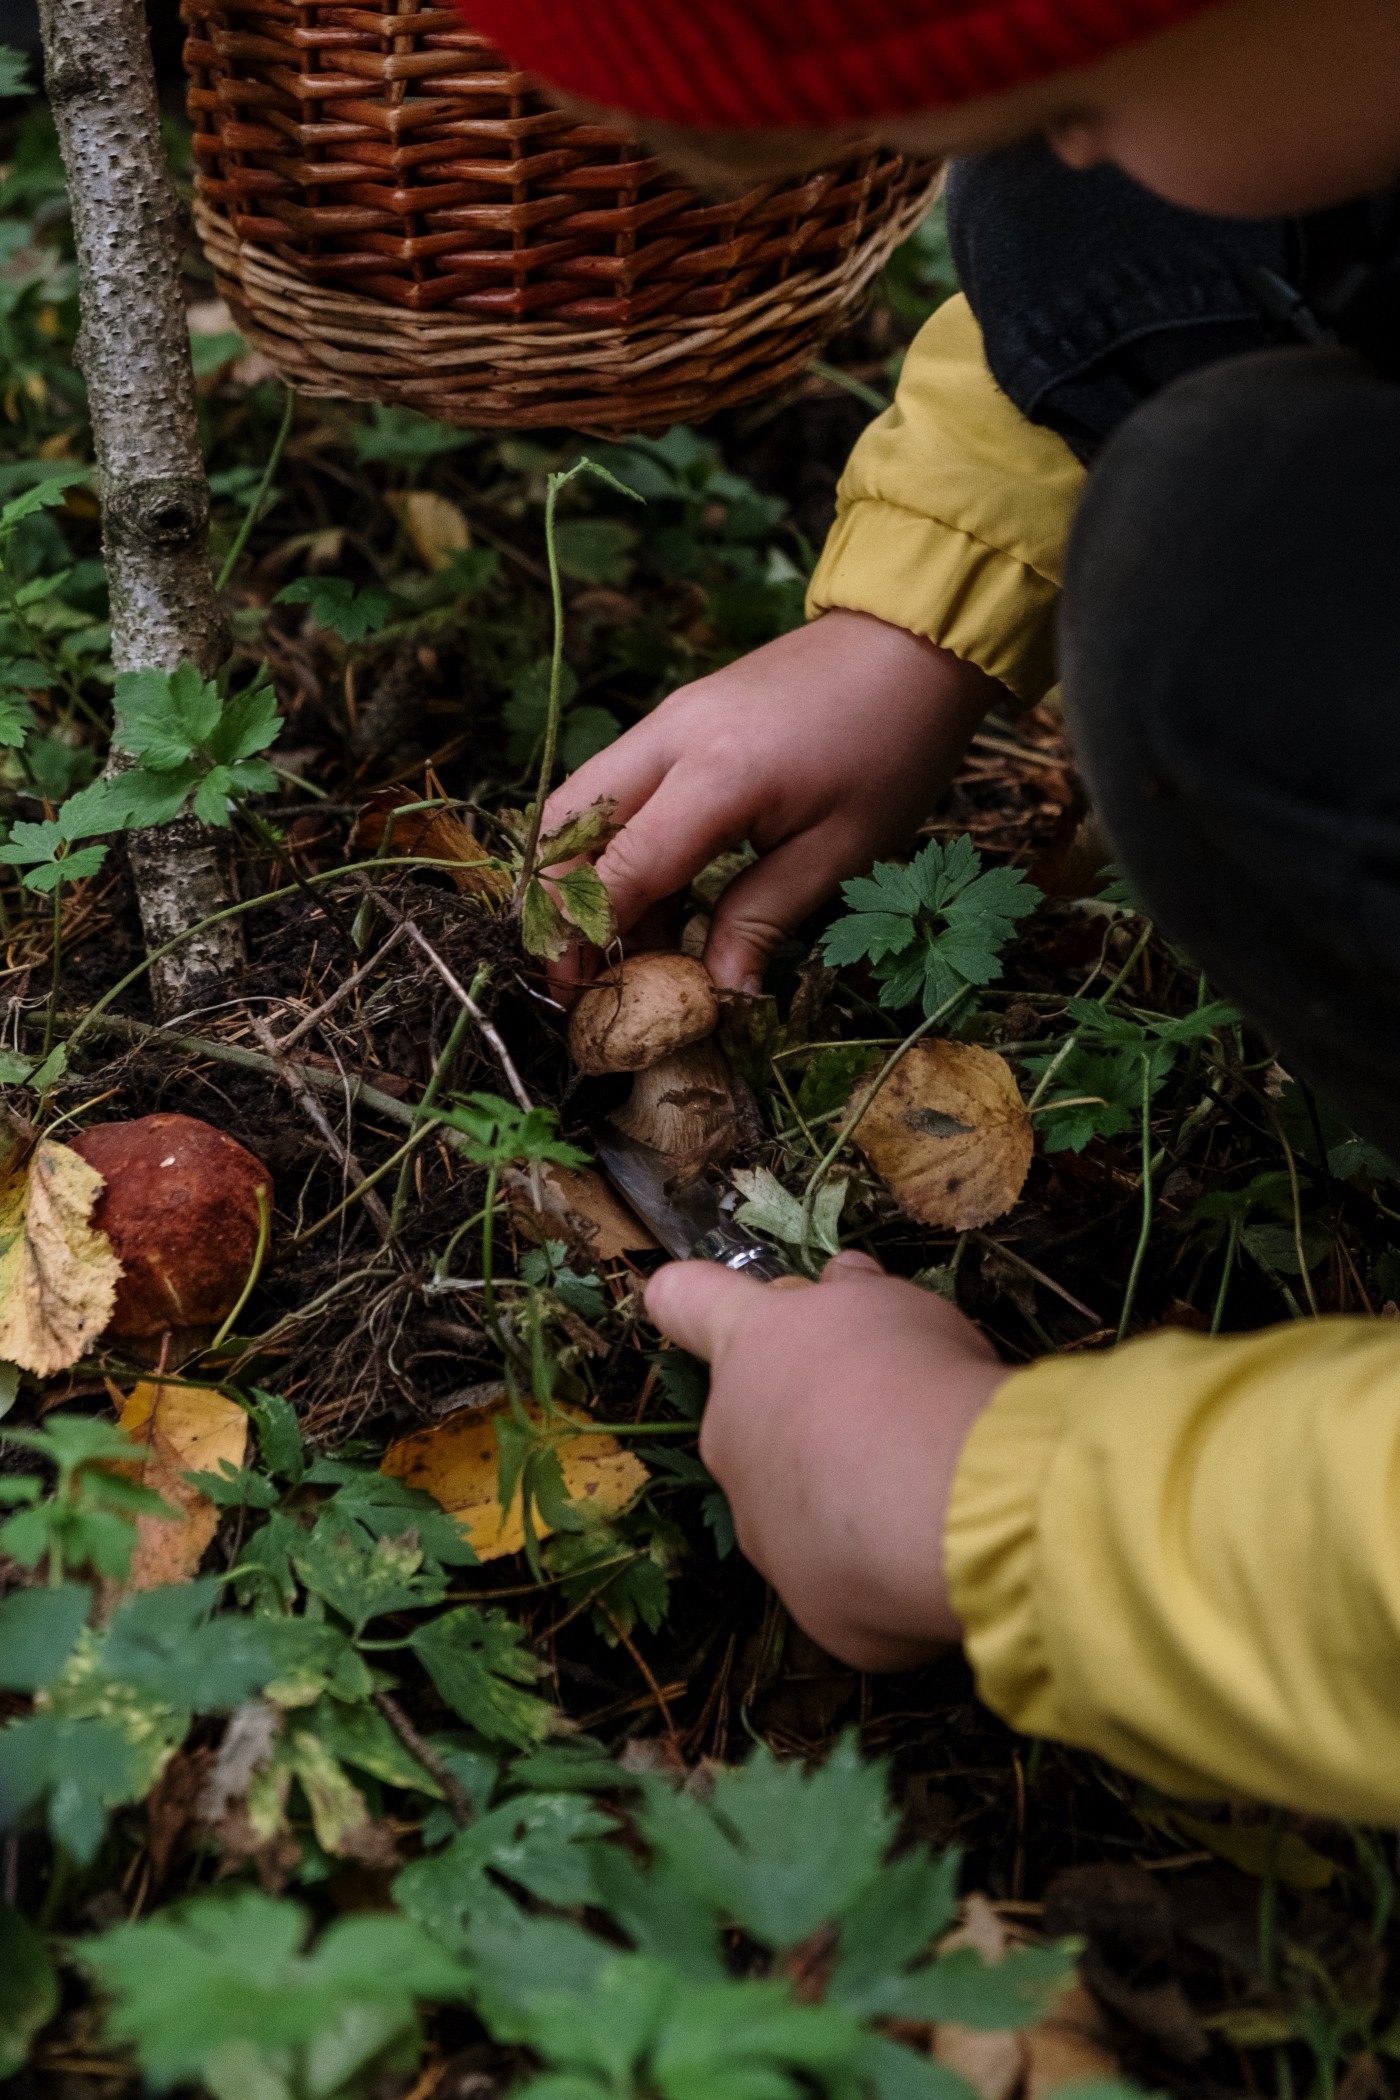 A child with a yellow jacket sleeves and a red knit beanie leans over, picking red and brown mushrooms from the dense forest floor.